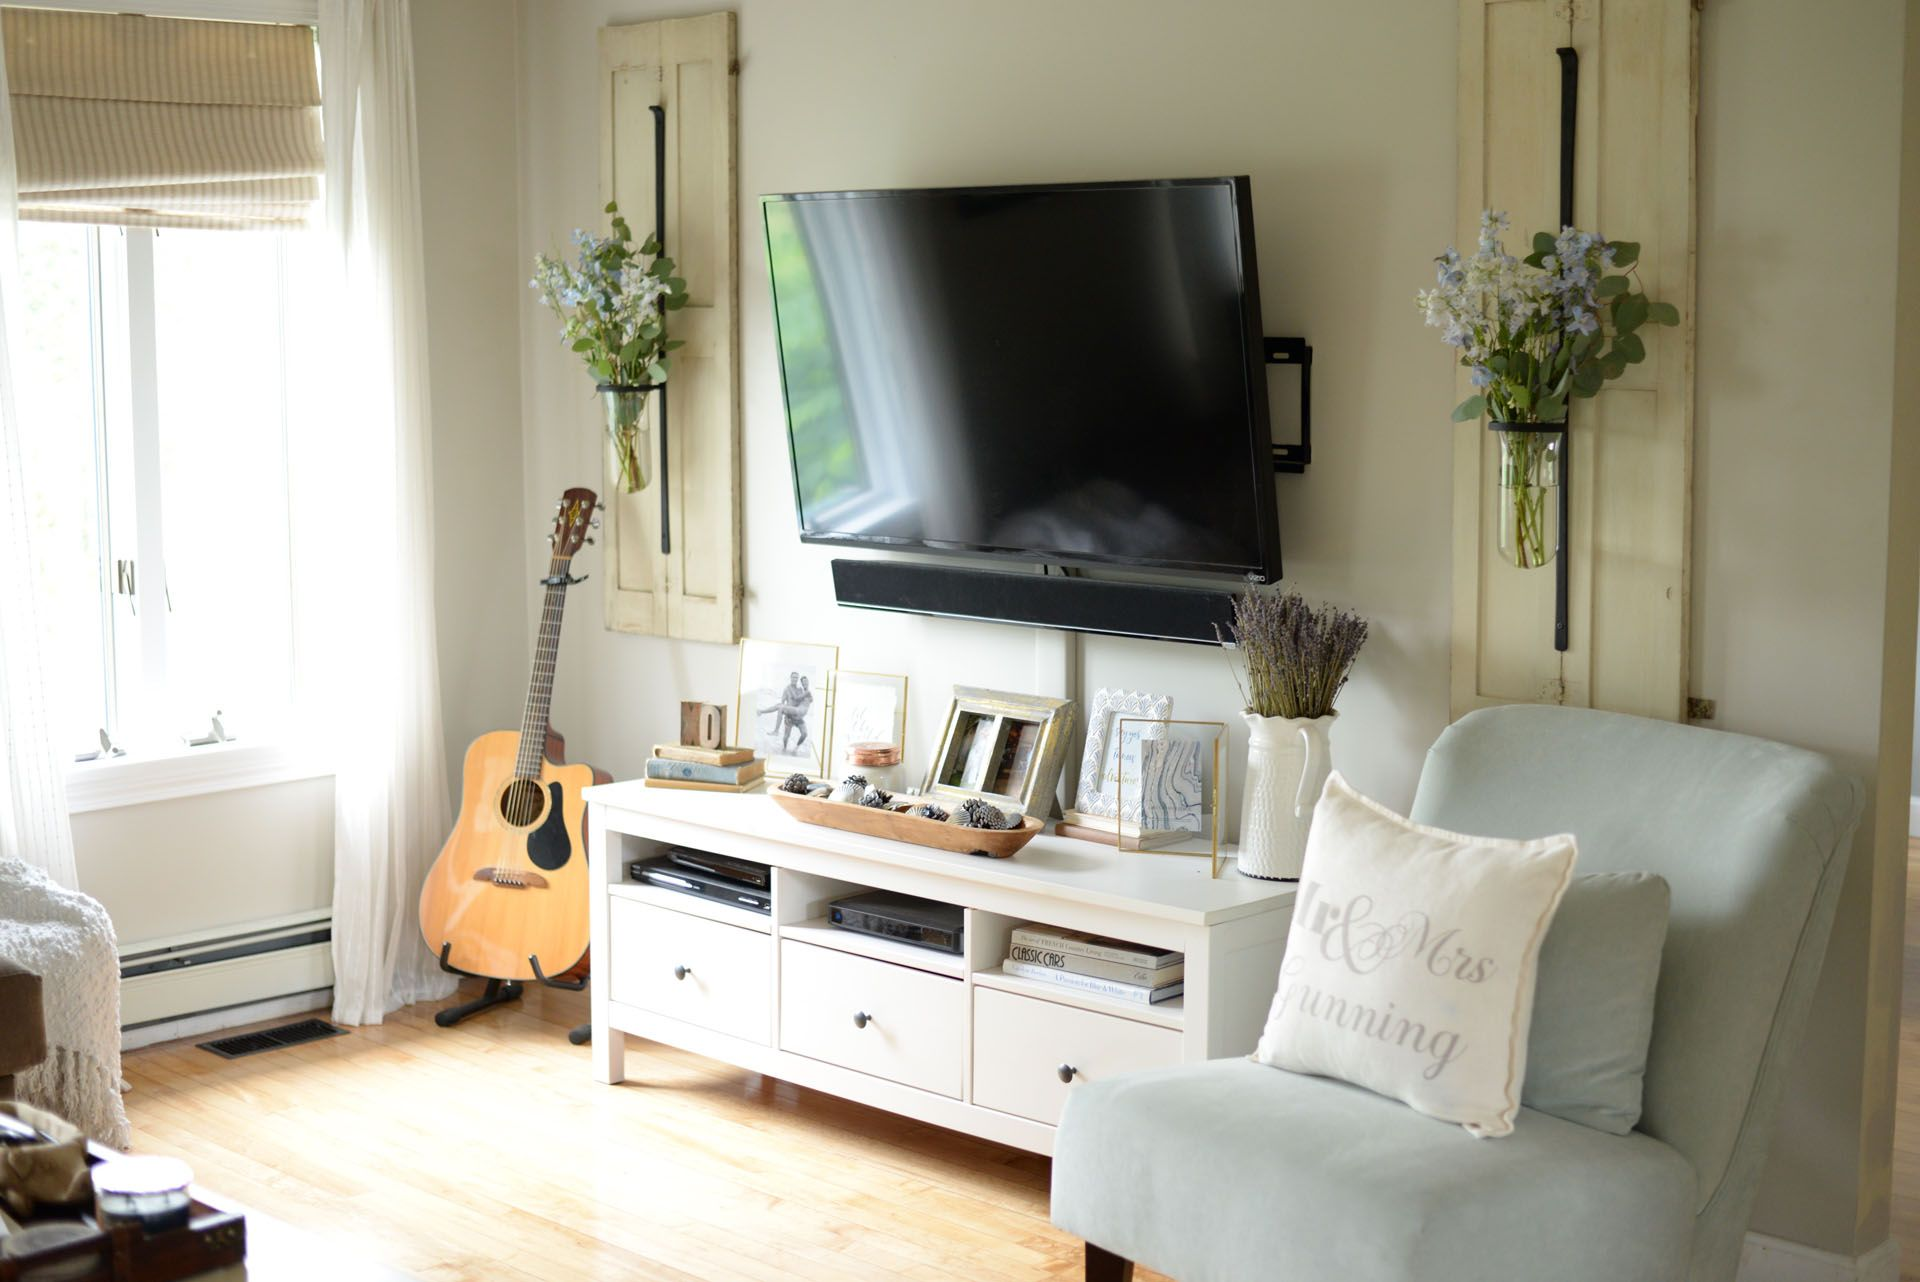 How to decorate around your tv like a pro bedroom tv - Hanging tv on wall ideas ...